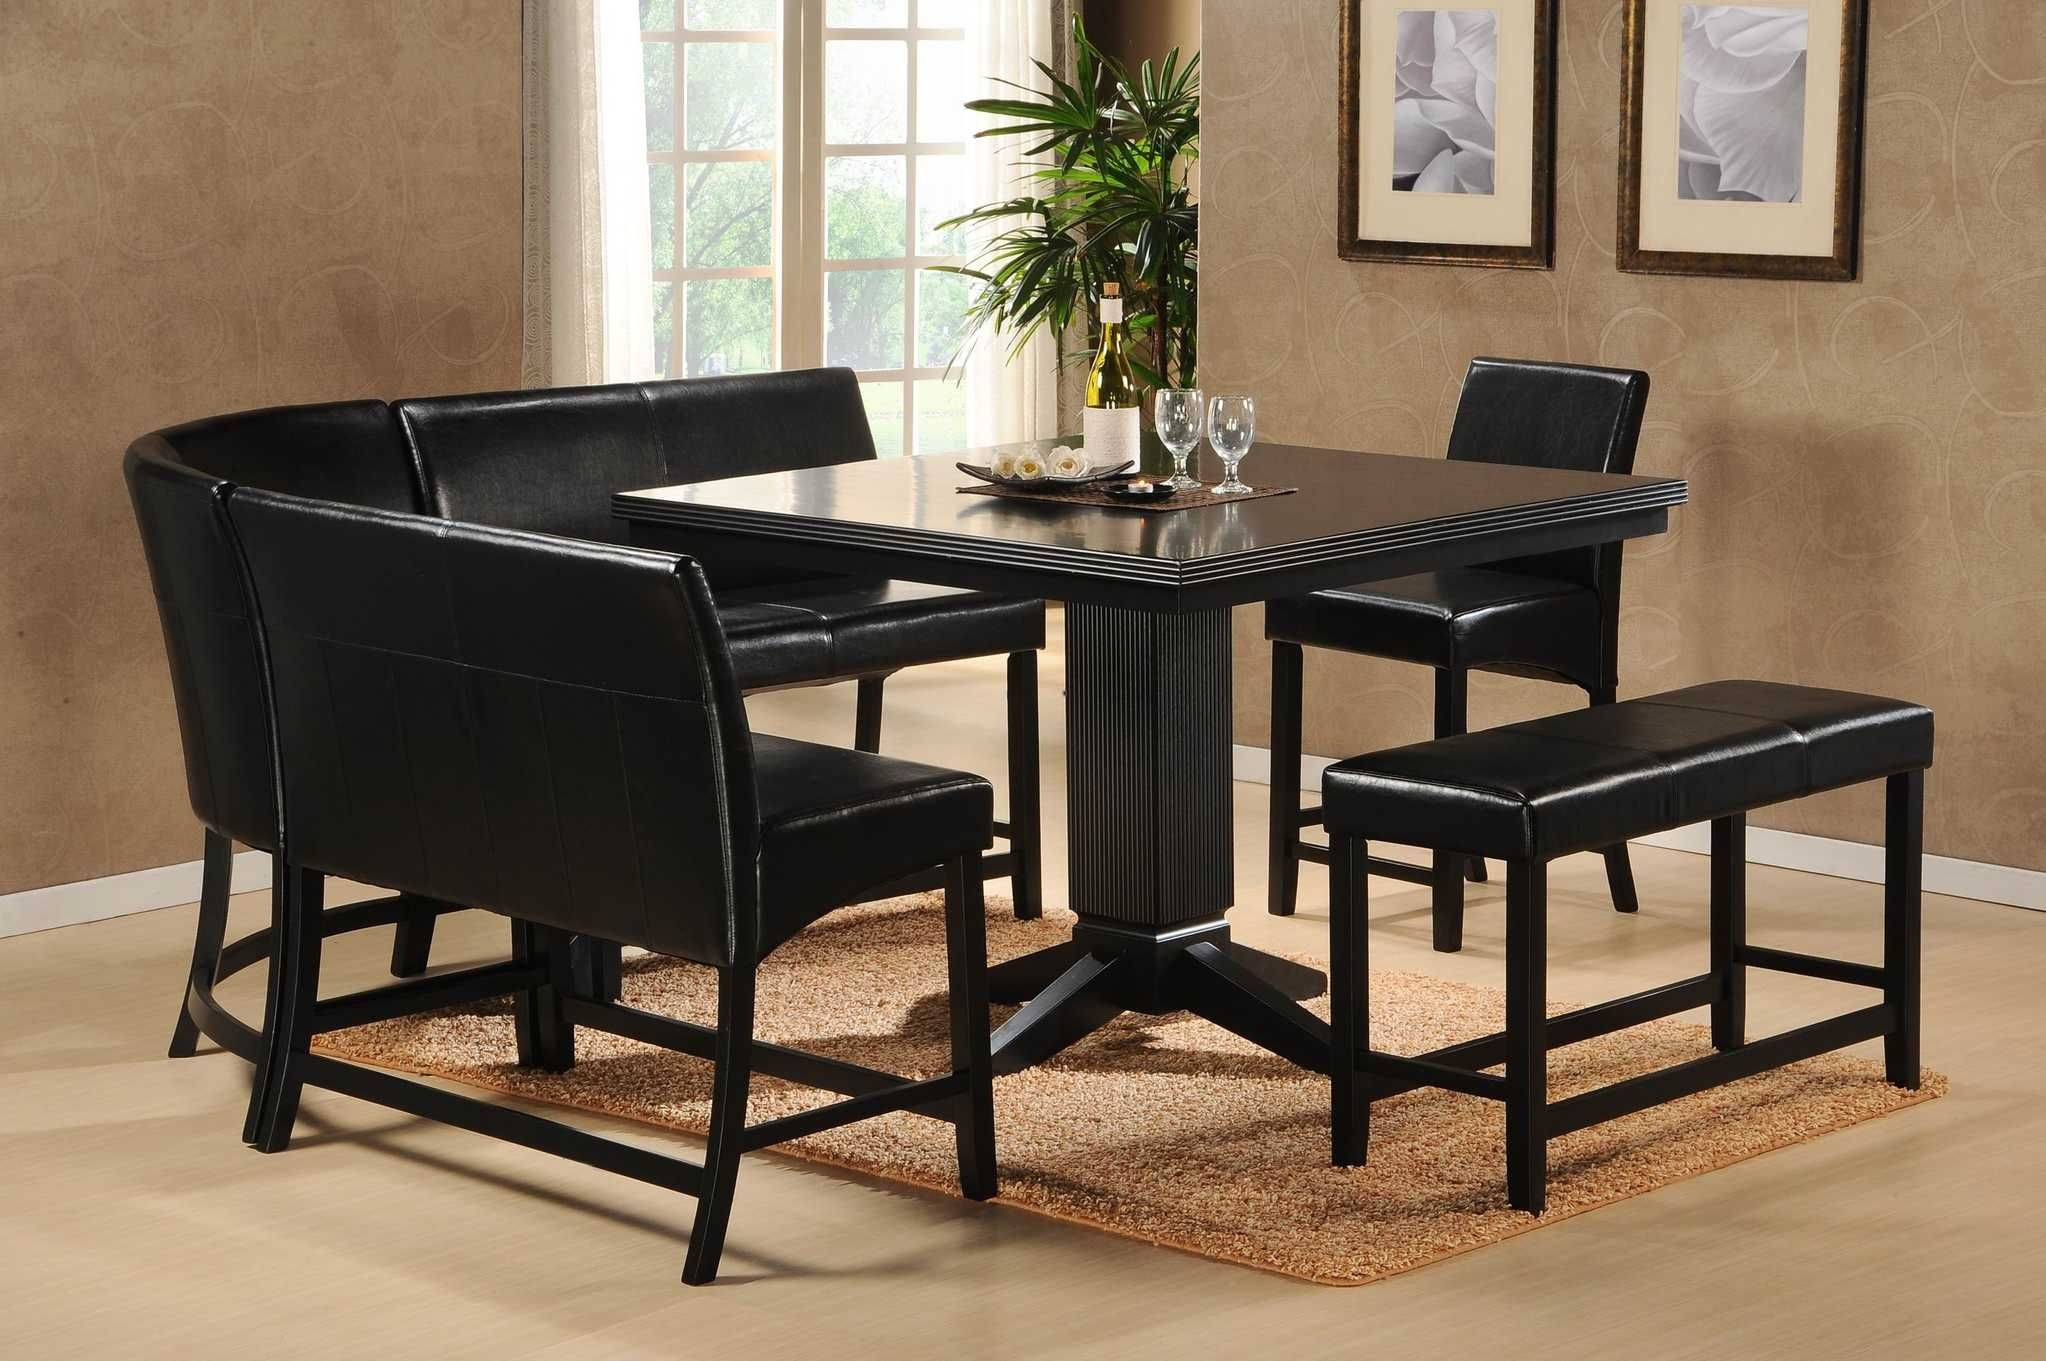 Dining Room Furniture Sets Cheap  Modern Contemporary Furniture Simple Discounted Dining Room Sets Design Inspiration